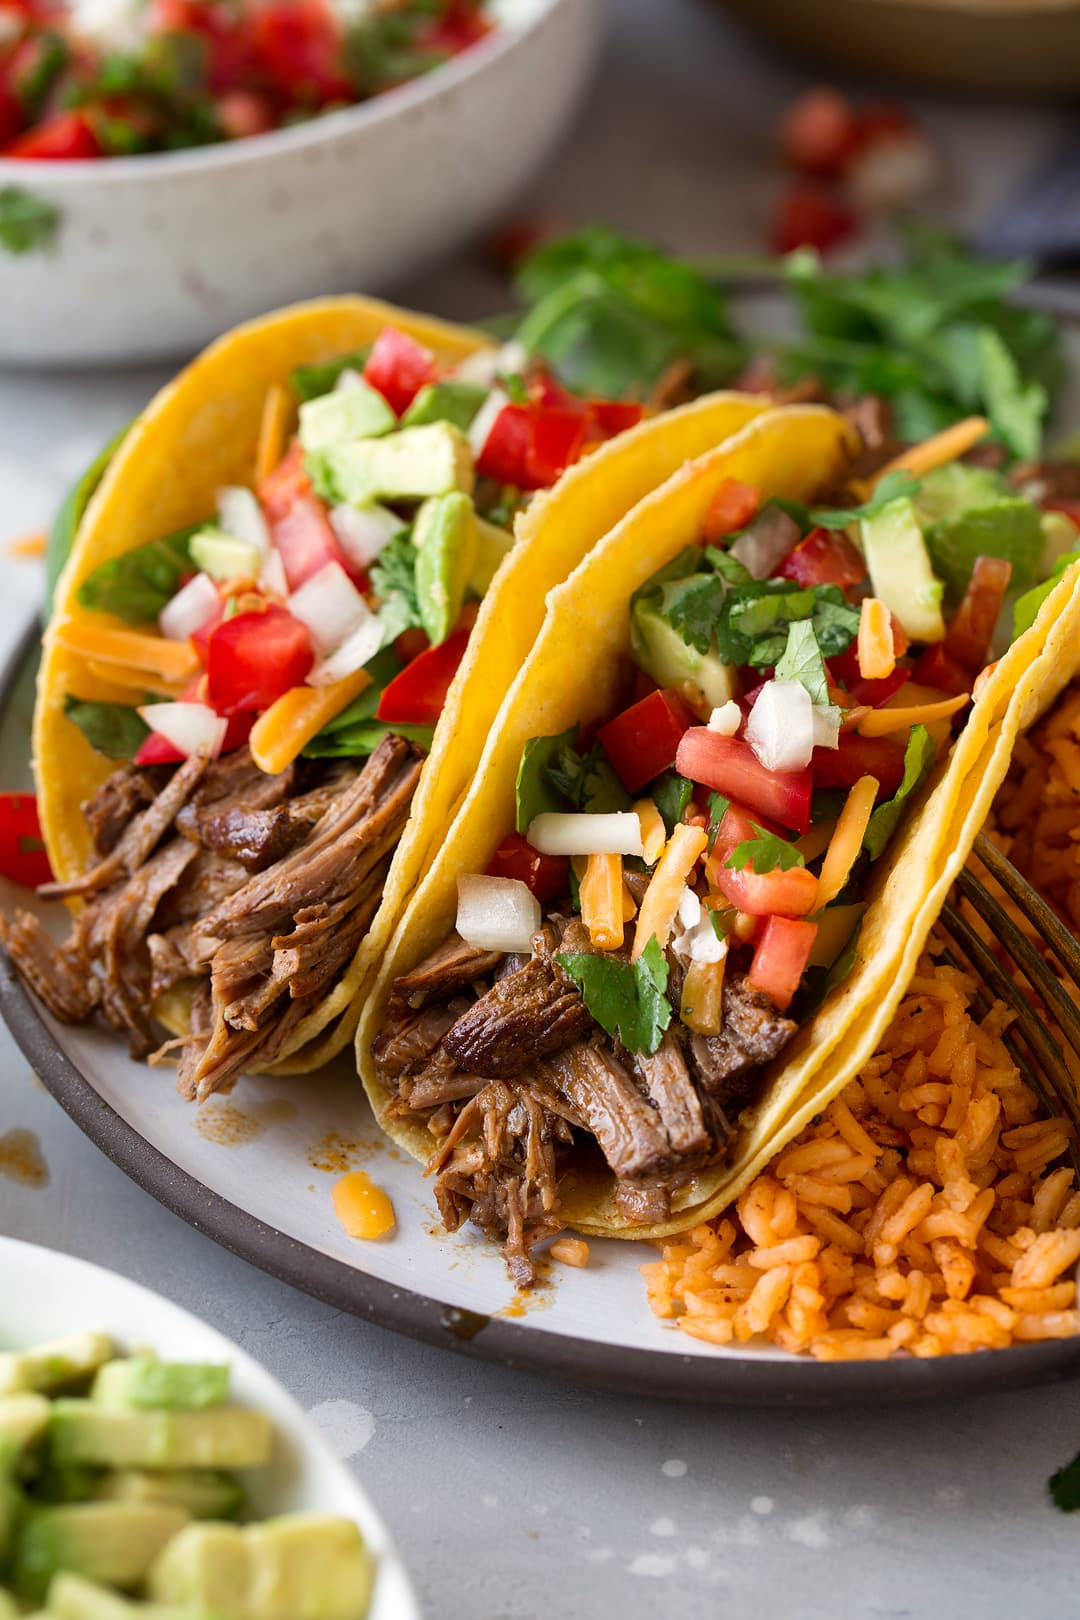 graphic about Fuzzy's Tacos Printable Menu identified as Gradual Cooker Shredded Beef Tacos - Cooking Cly